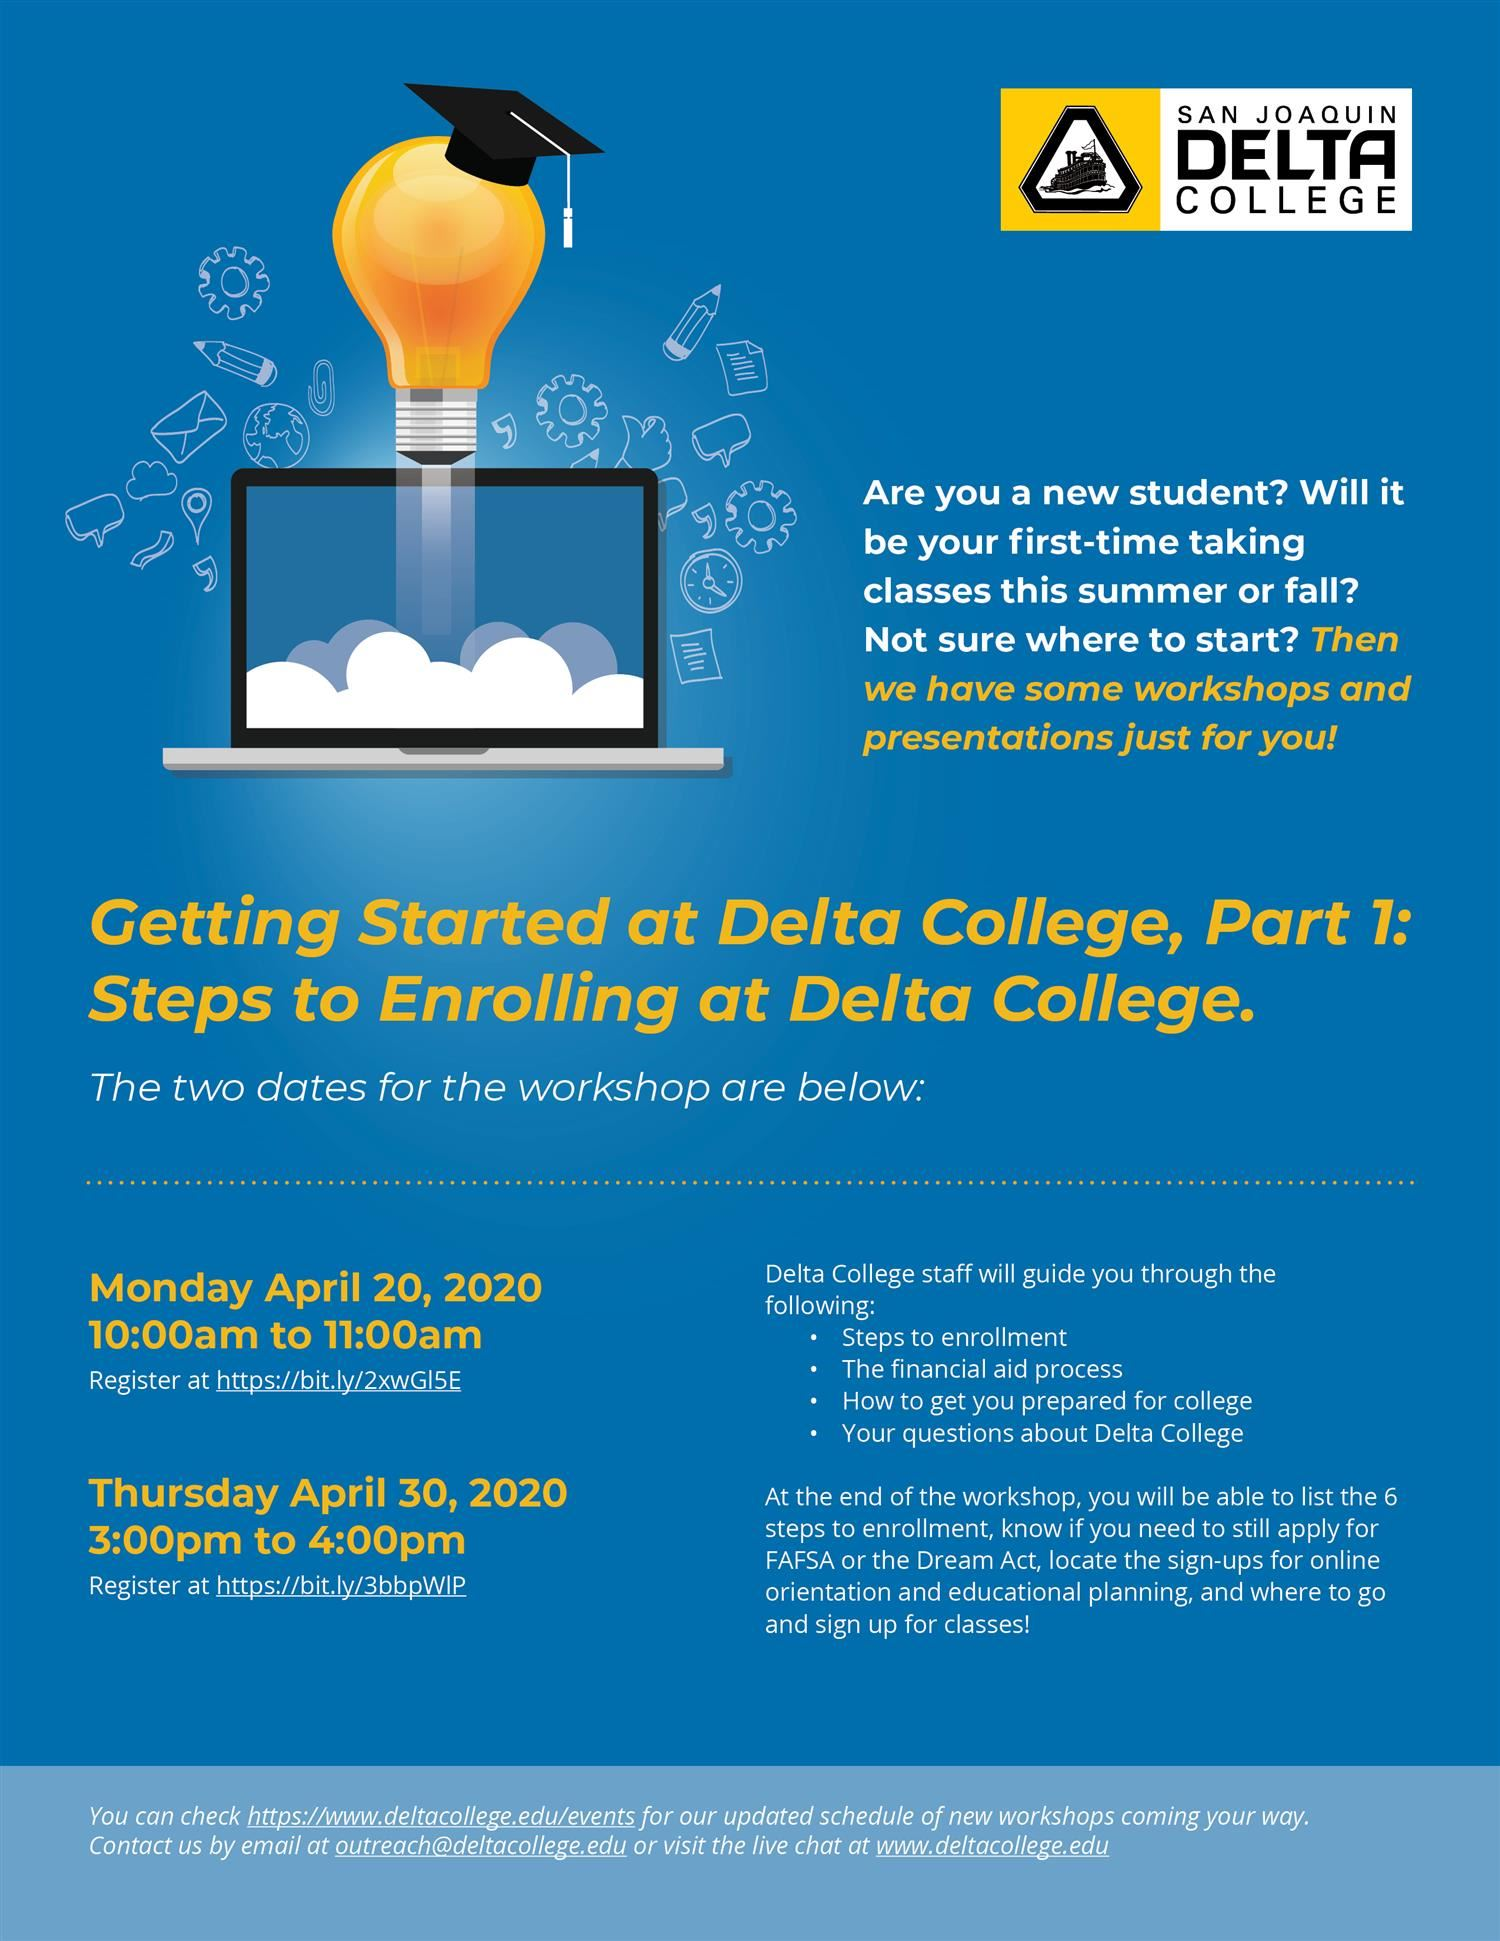 San Joaquin Delta College is #StillHereForYou Follow-Up